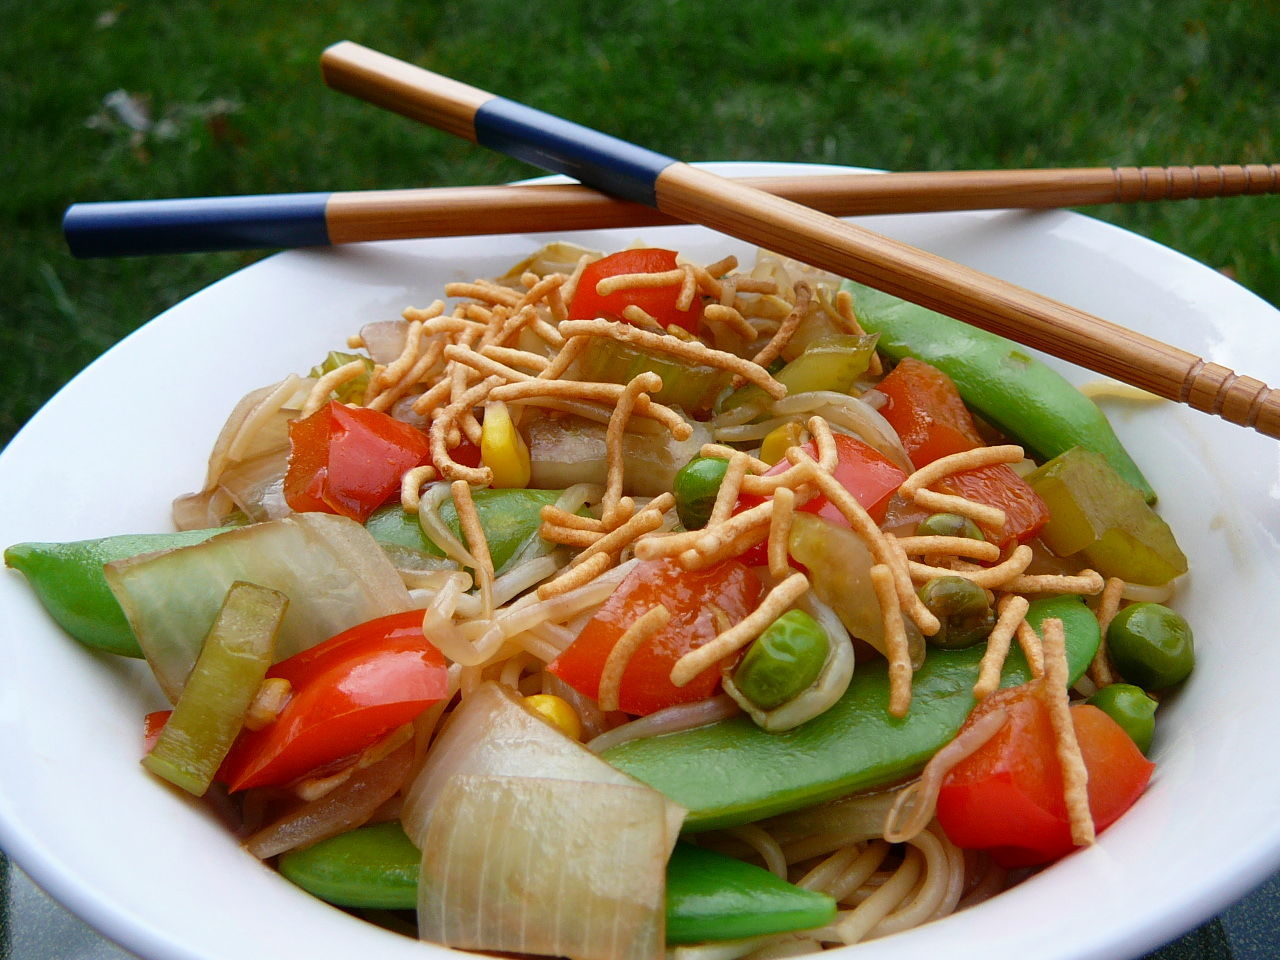 """A colorful Chinese lo mein dish packed with celery, mushrooms, red bell peppers, bean sprouts, and snow peas. """"My whole family loved this even the veggie haters,"""" says reviewer Mich. """"The mushrooms make it seem like there is meat so no complaints from my meat eaters either!"""""""